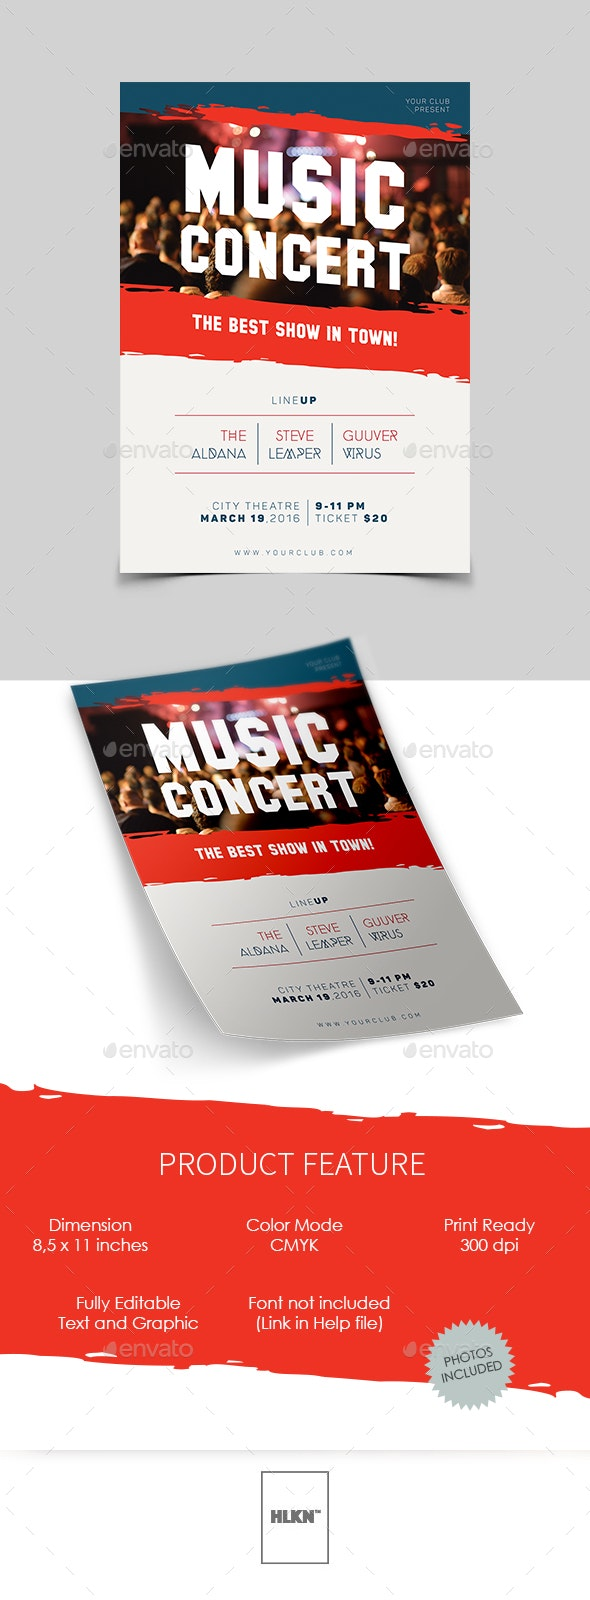 Music Concert Flyer - Concerts Events